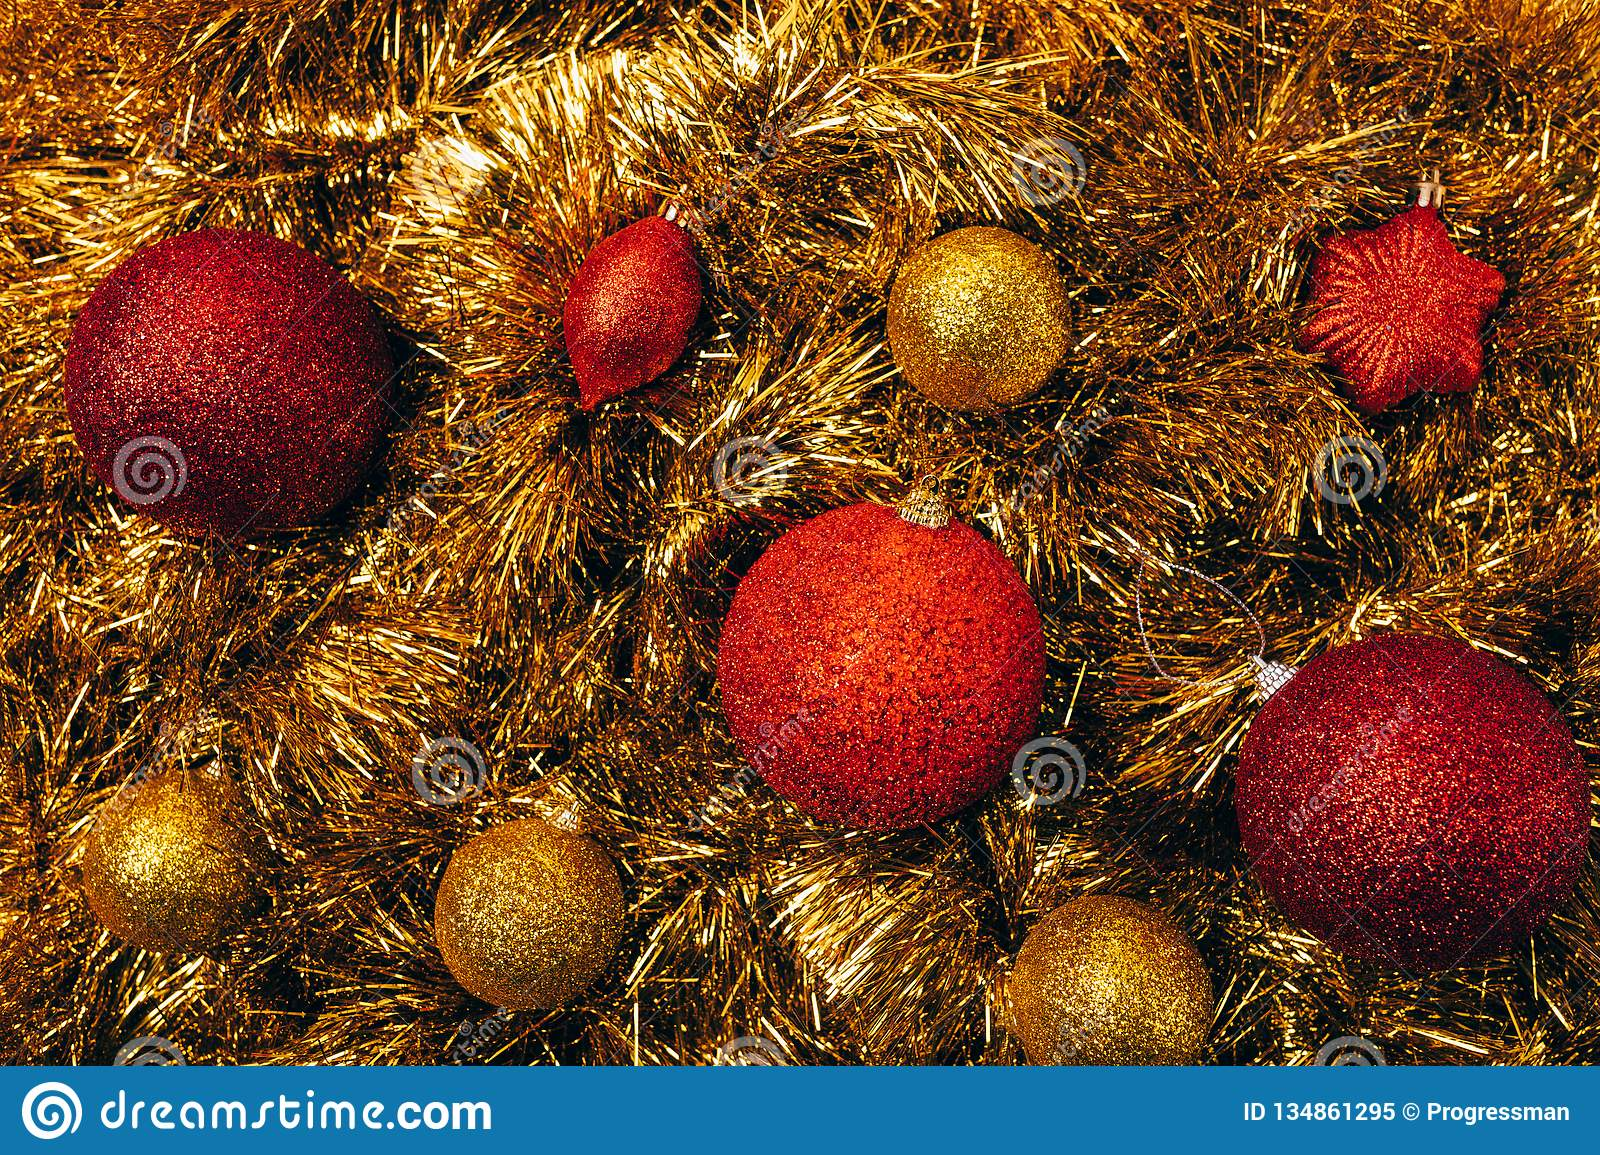 Top View Red And Golden Christmas Balls Stock Image - Image of festive, glitter: 134861295